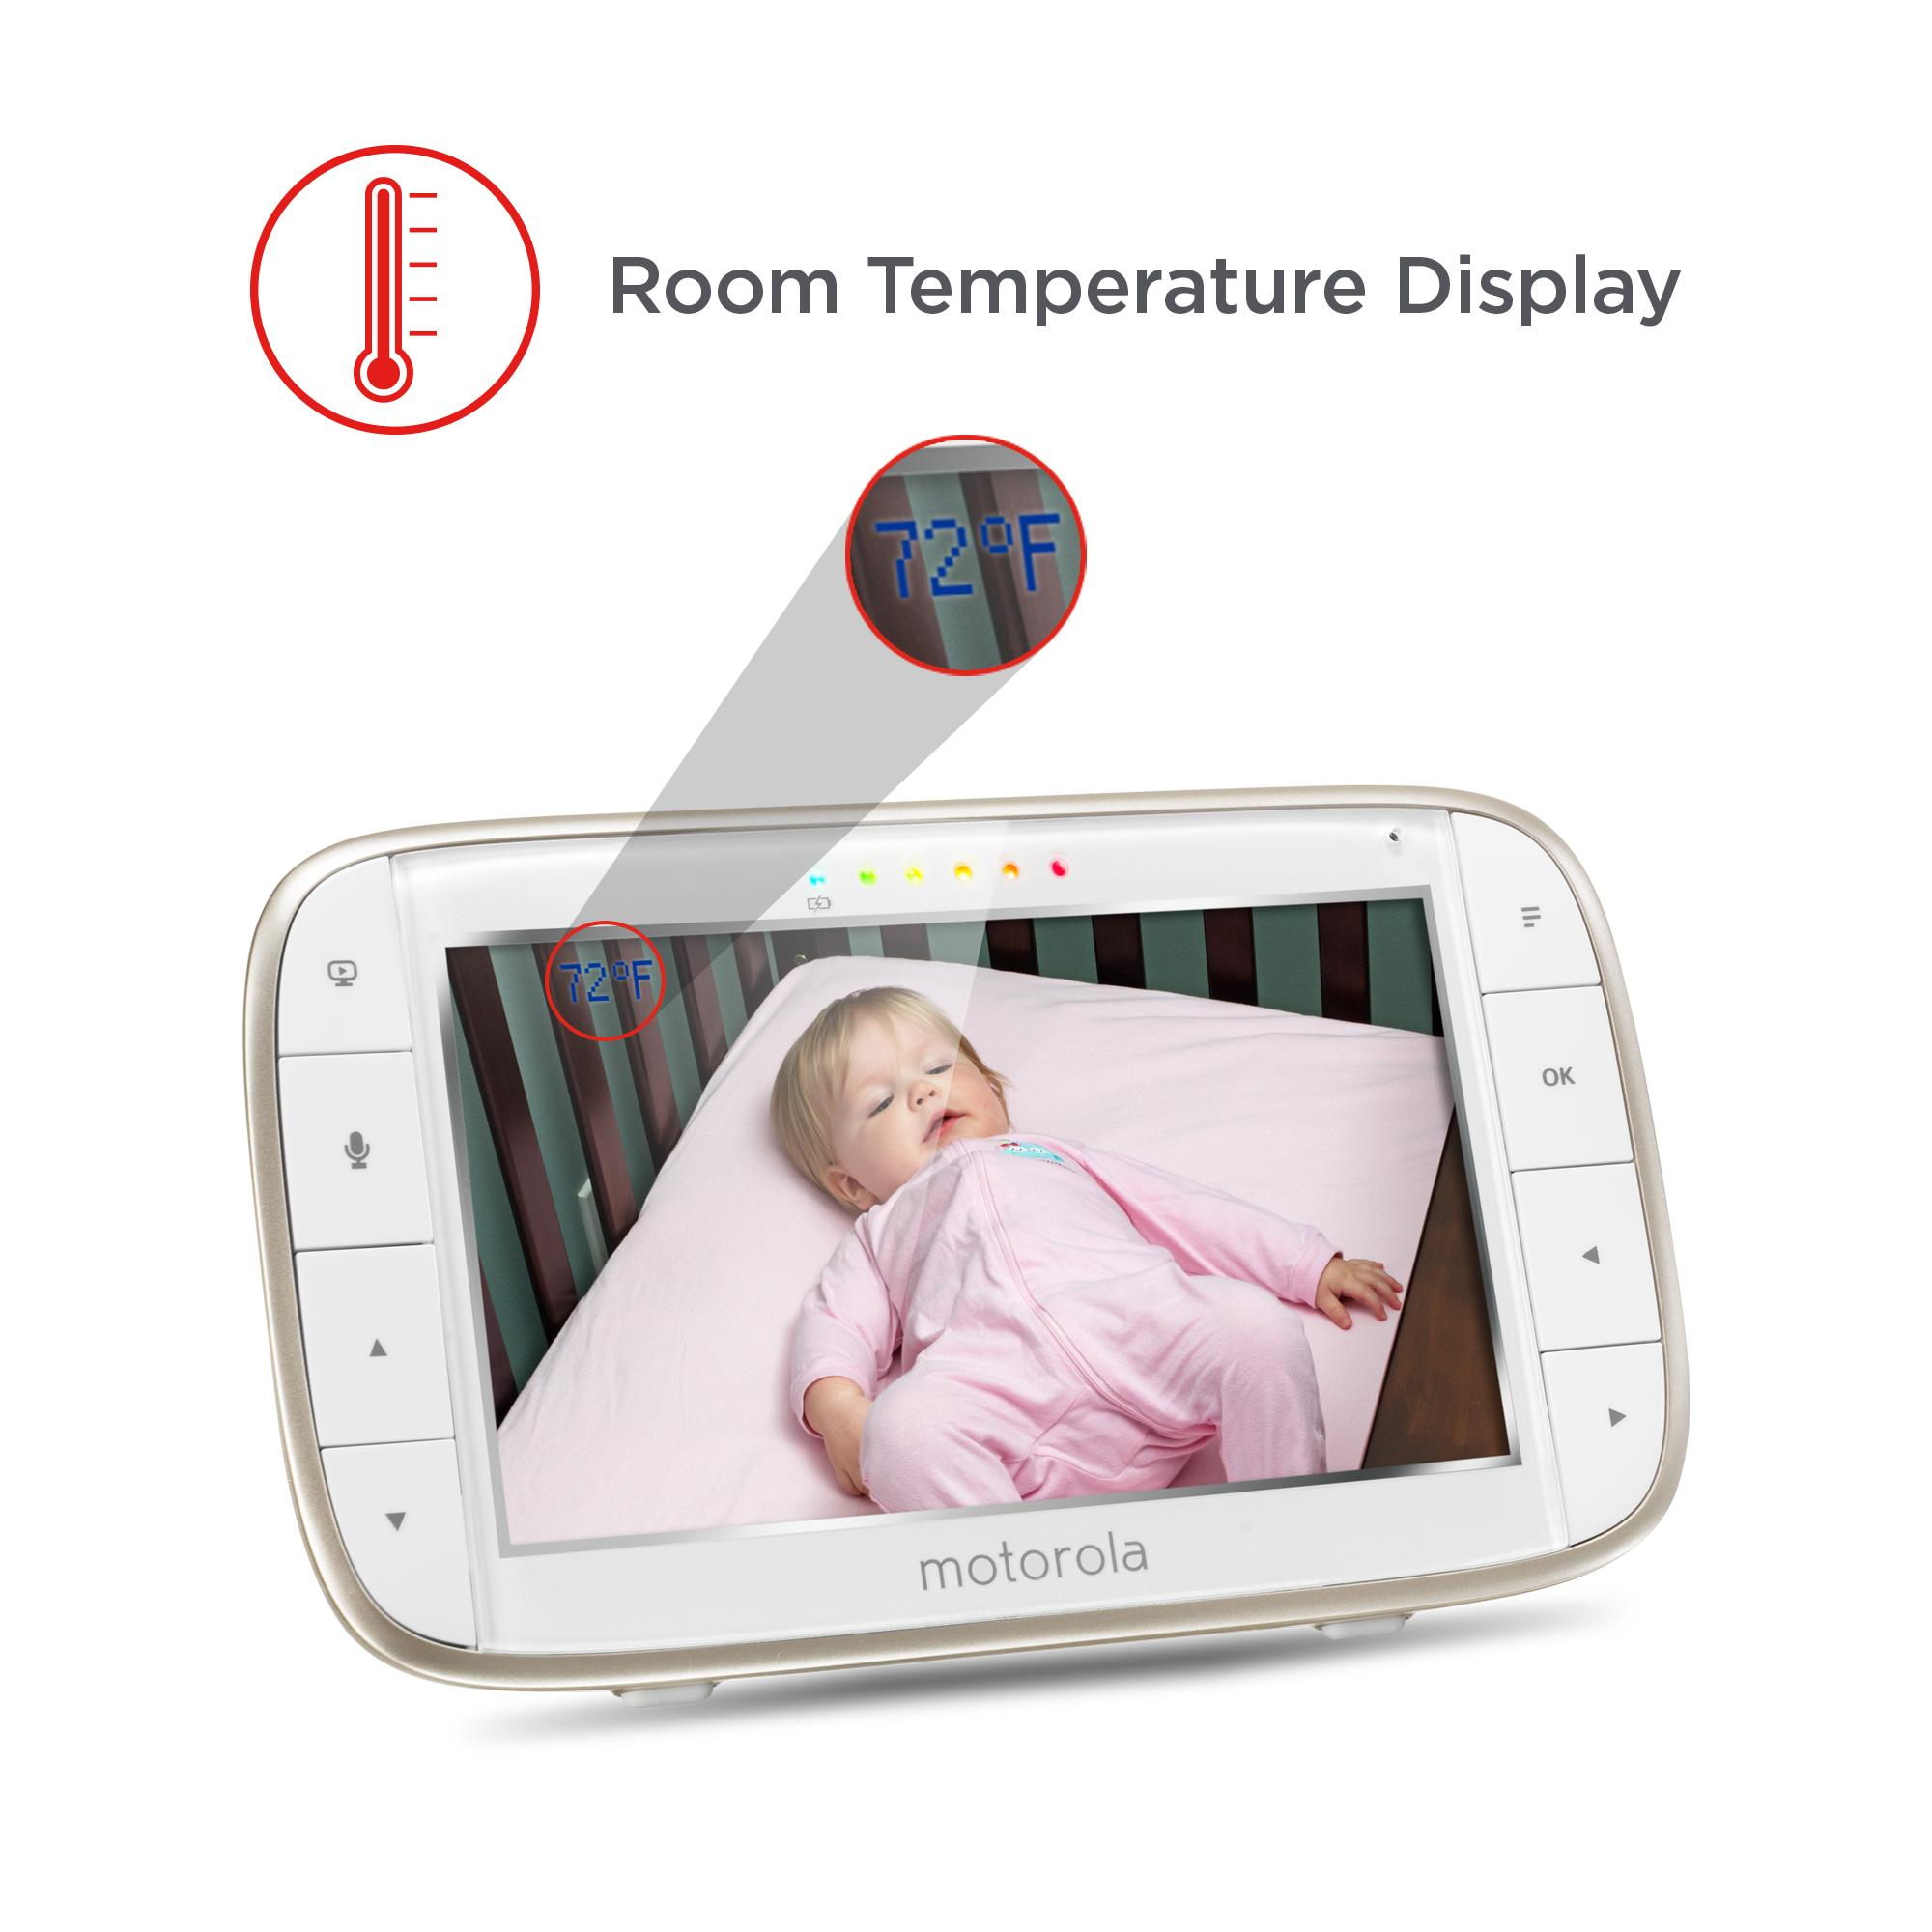 new motorola video baby monitor wi fi remote access camera summer security room ebay. Black Bedroom Furniture Sets. Home Design Ideas